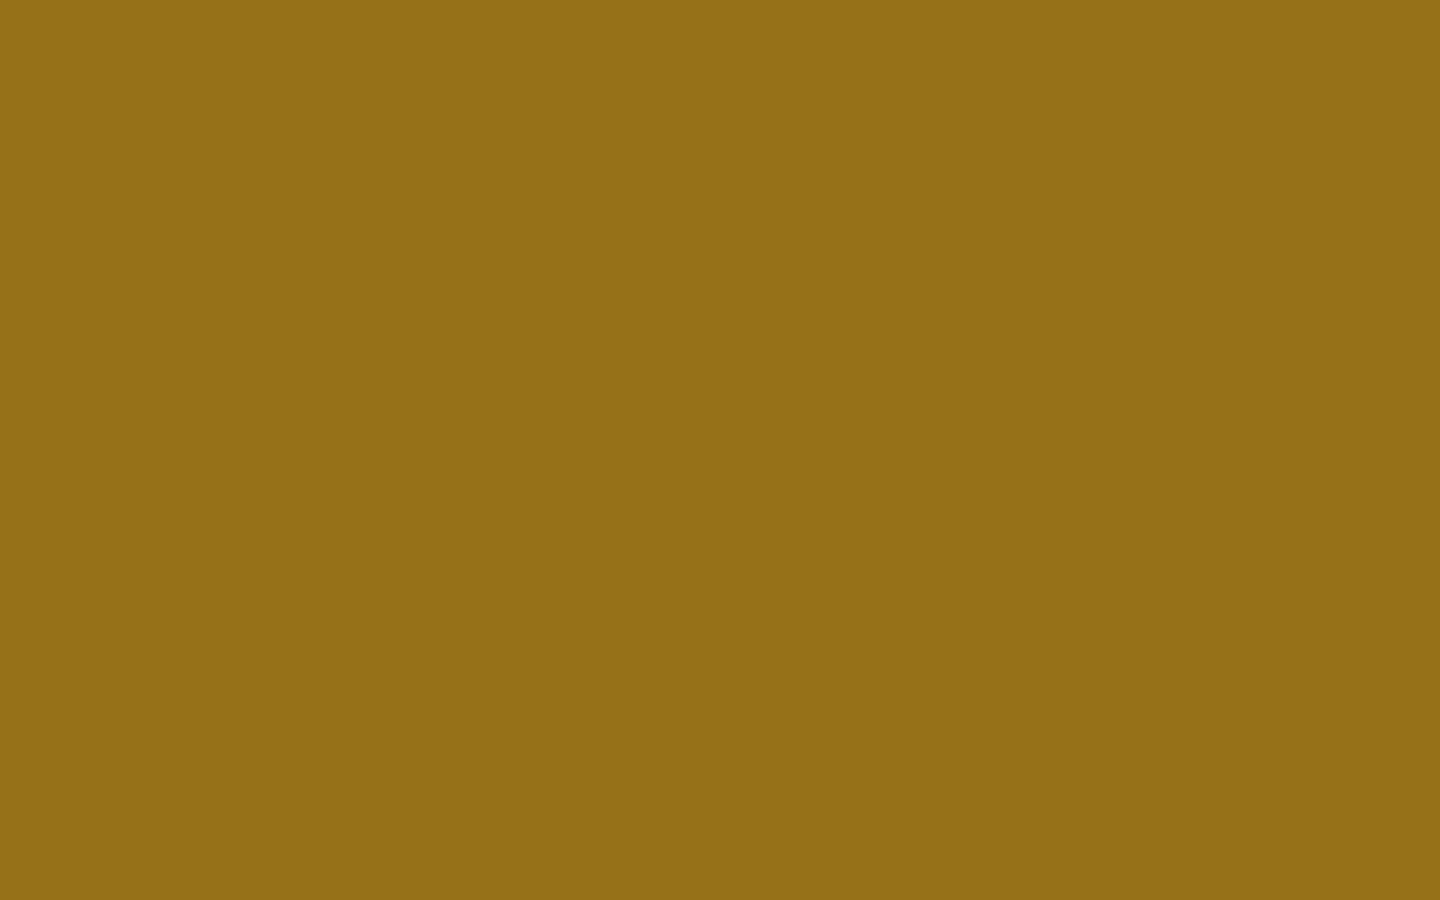 1440x900 Sand Dune Solid Color Background